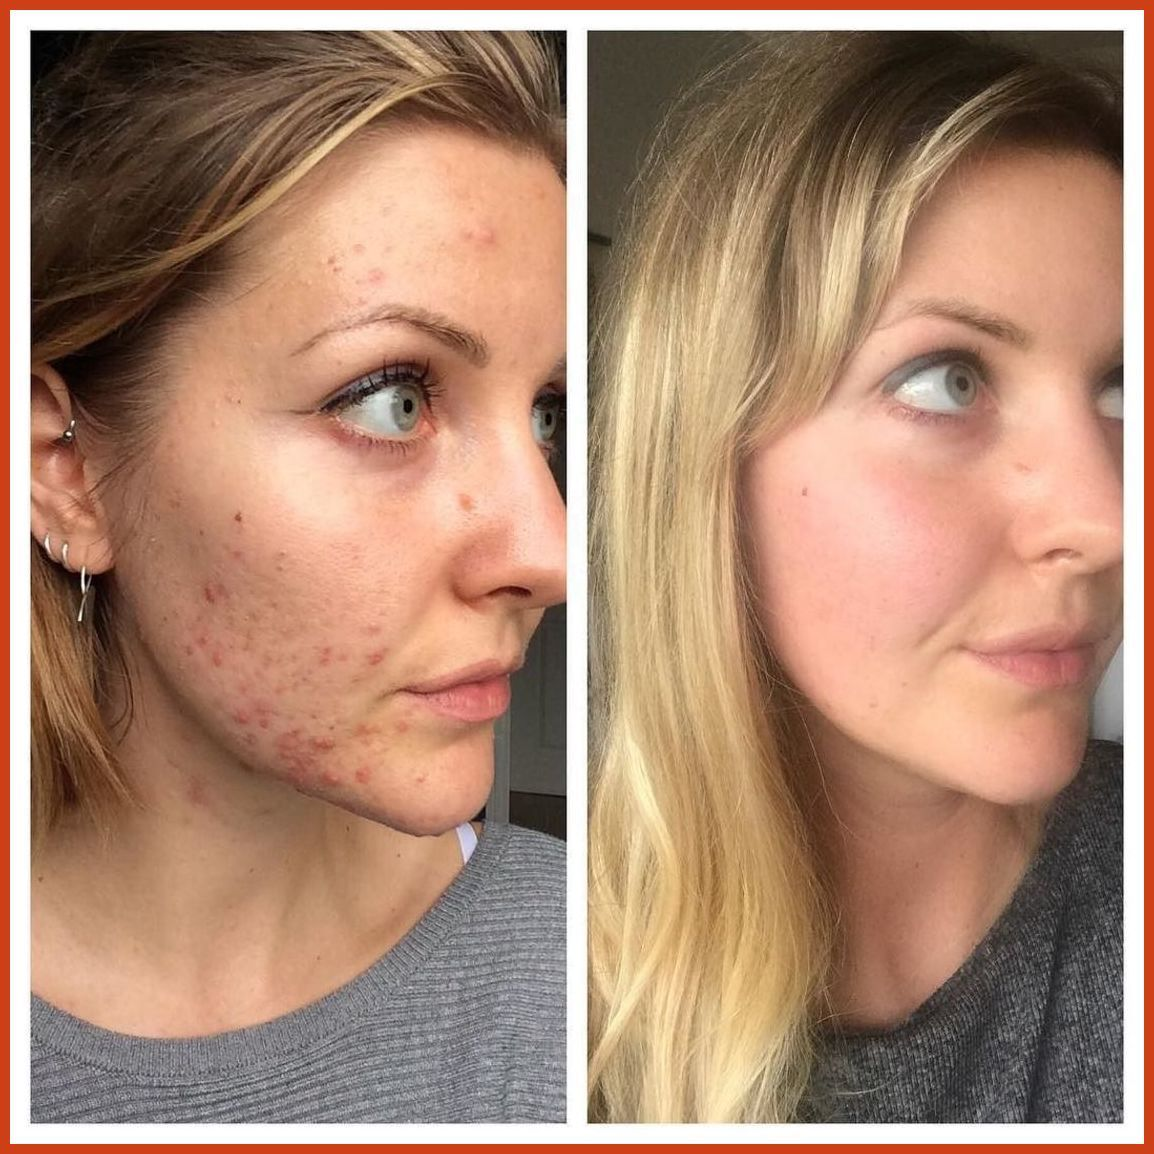 fc82c99c4eeb Acne Scar Removal - Laser Acne Scar Removal Treatments  Removes Serious  Scars   Read more details by clicking on the image.  CysticAcneTreatments    ...